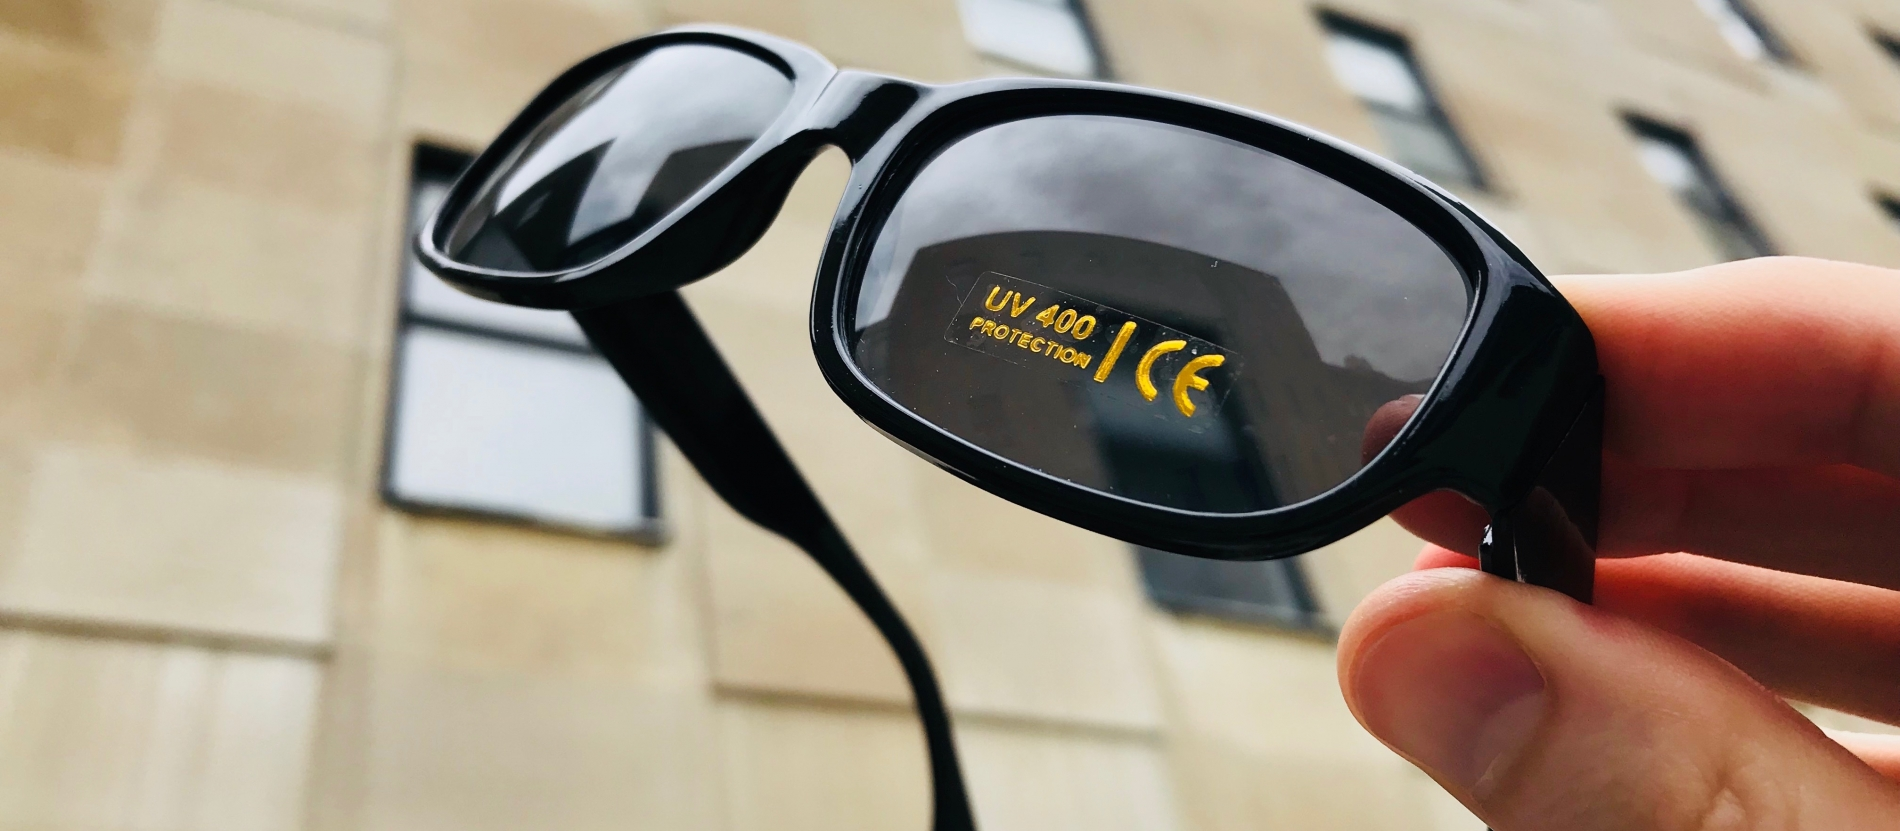 b526040c798c Consumers have an impressive choice when it comes to sunglasses, from  rainbow tints to polarized lenses. But you don't get more UV protection the  more money ...